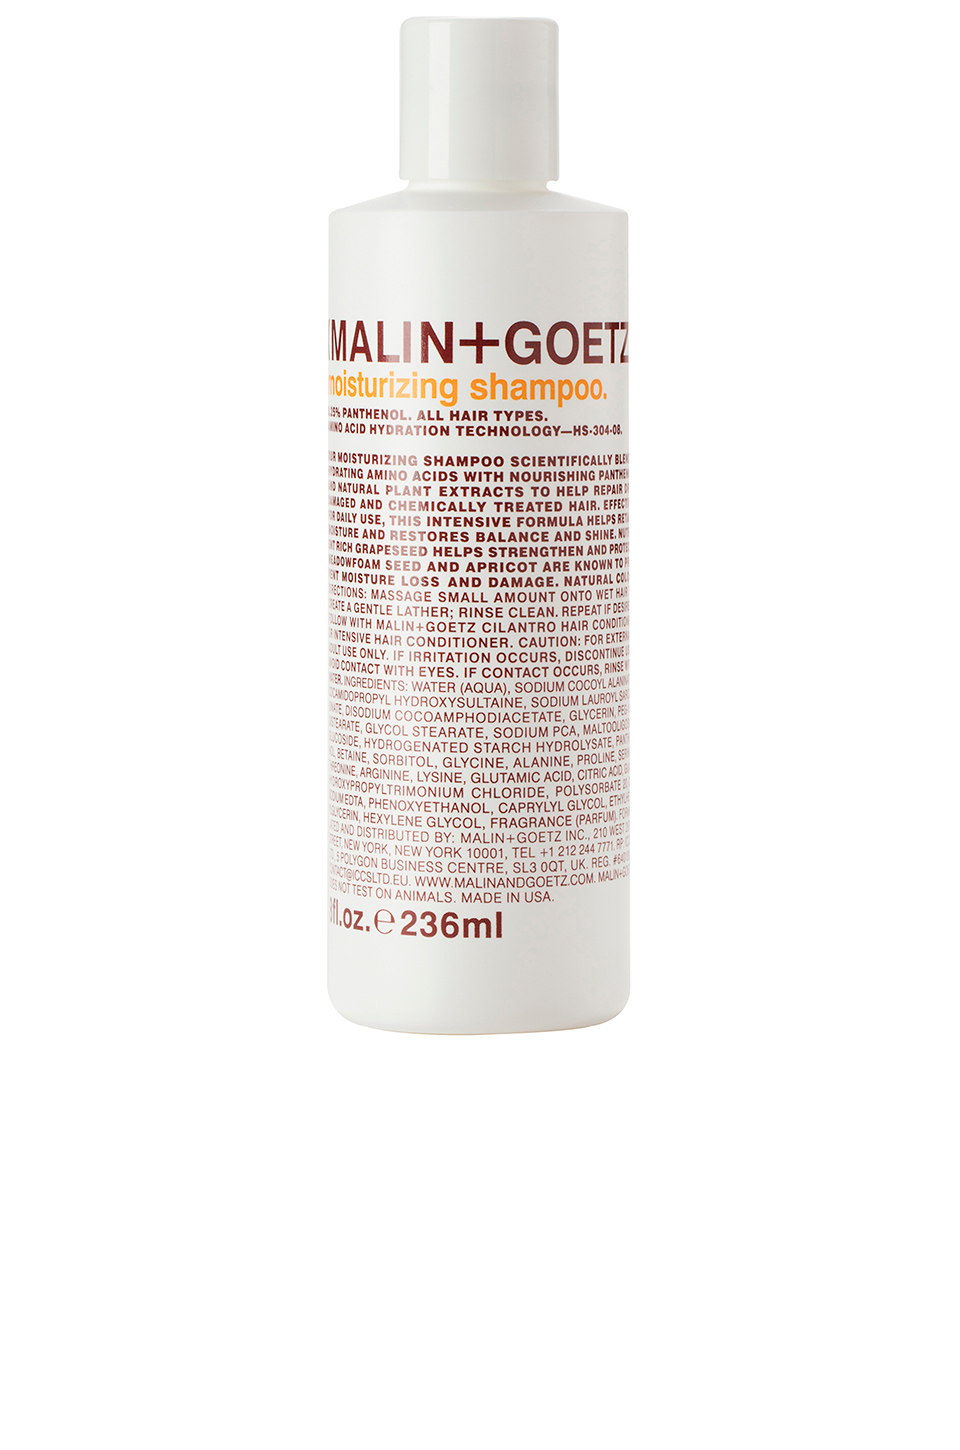 MALIN+GOETZ Moisturizing Shampoo in